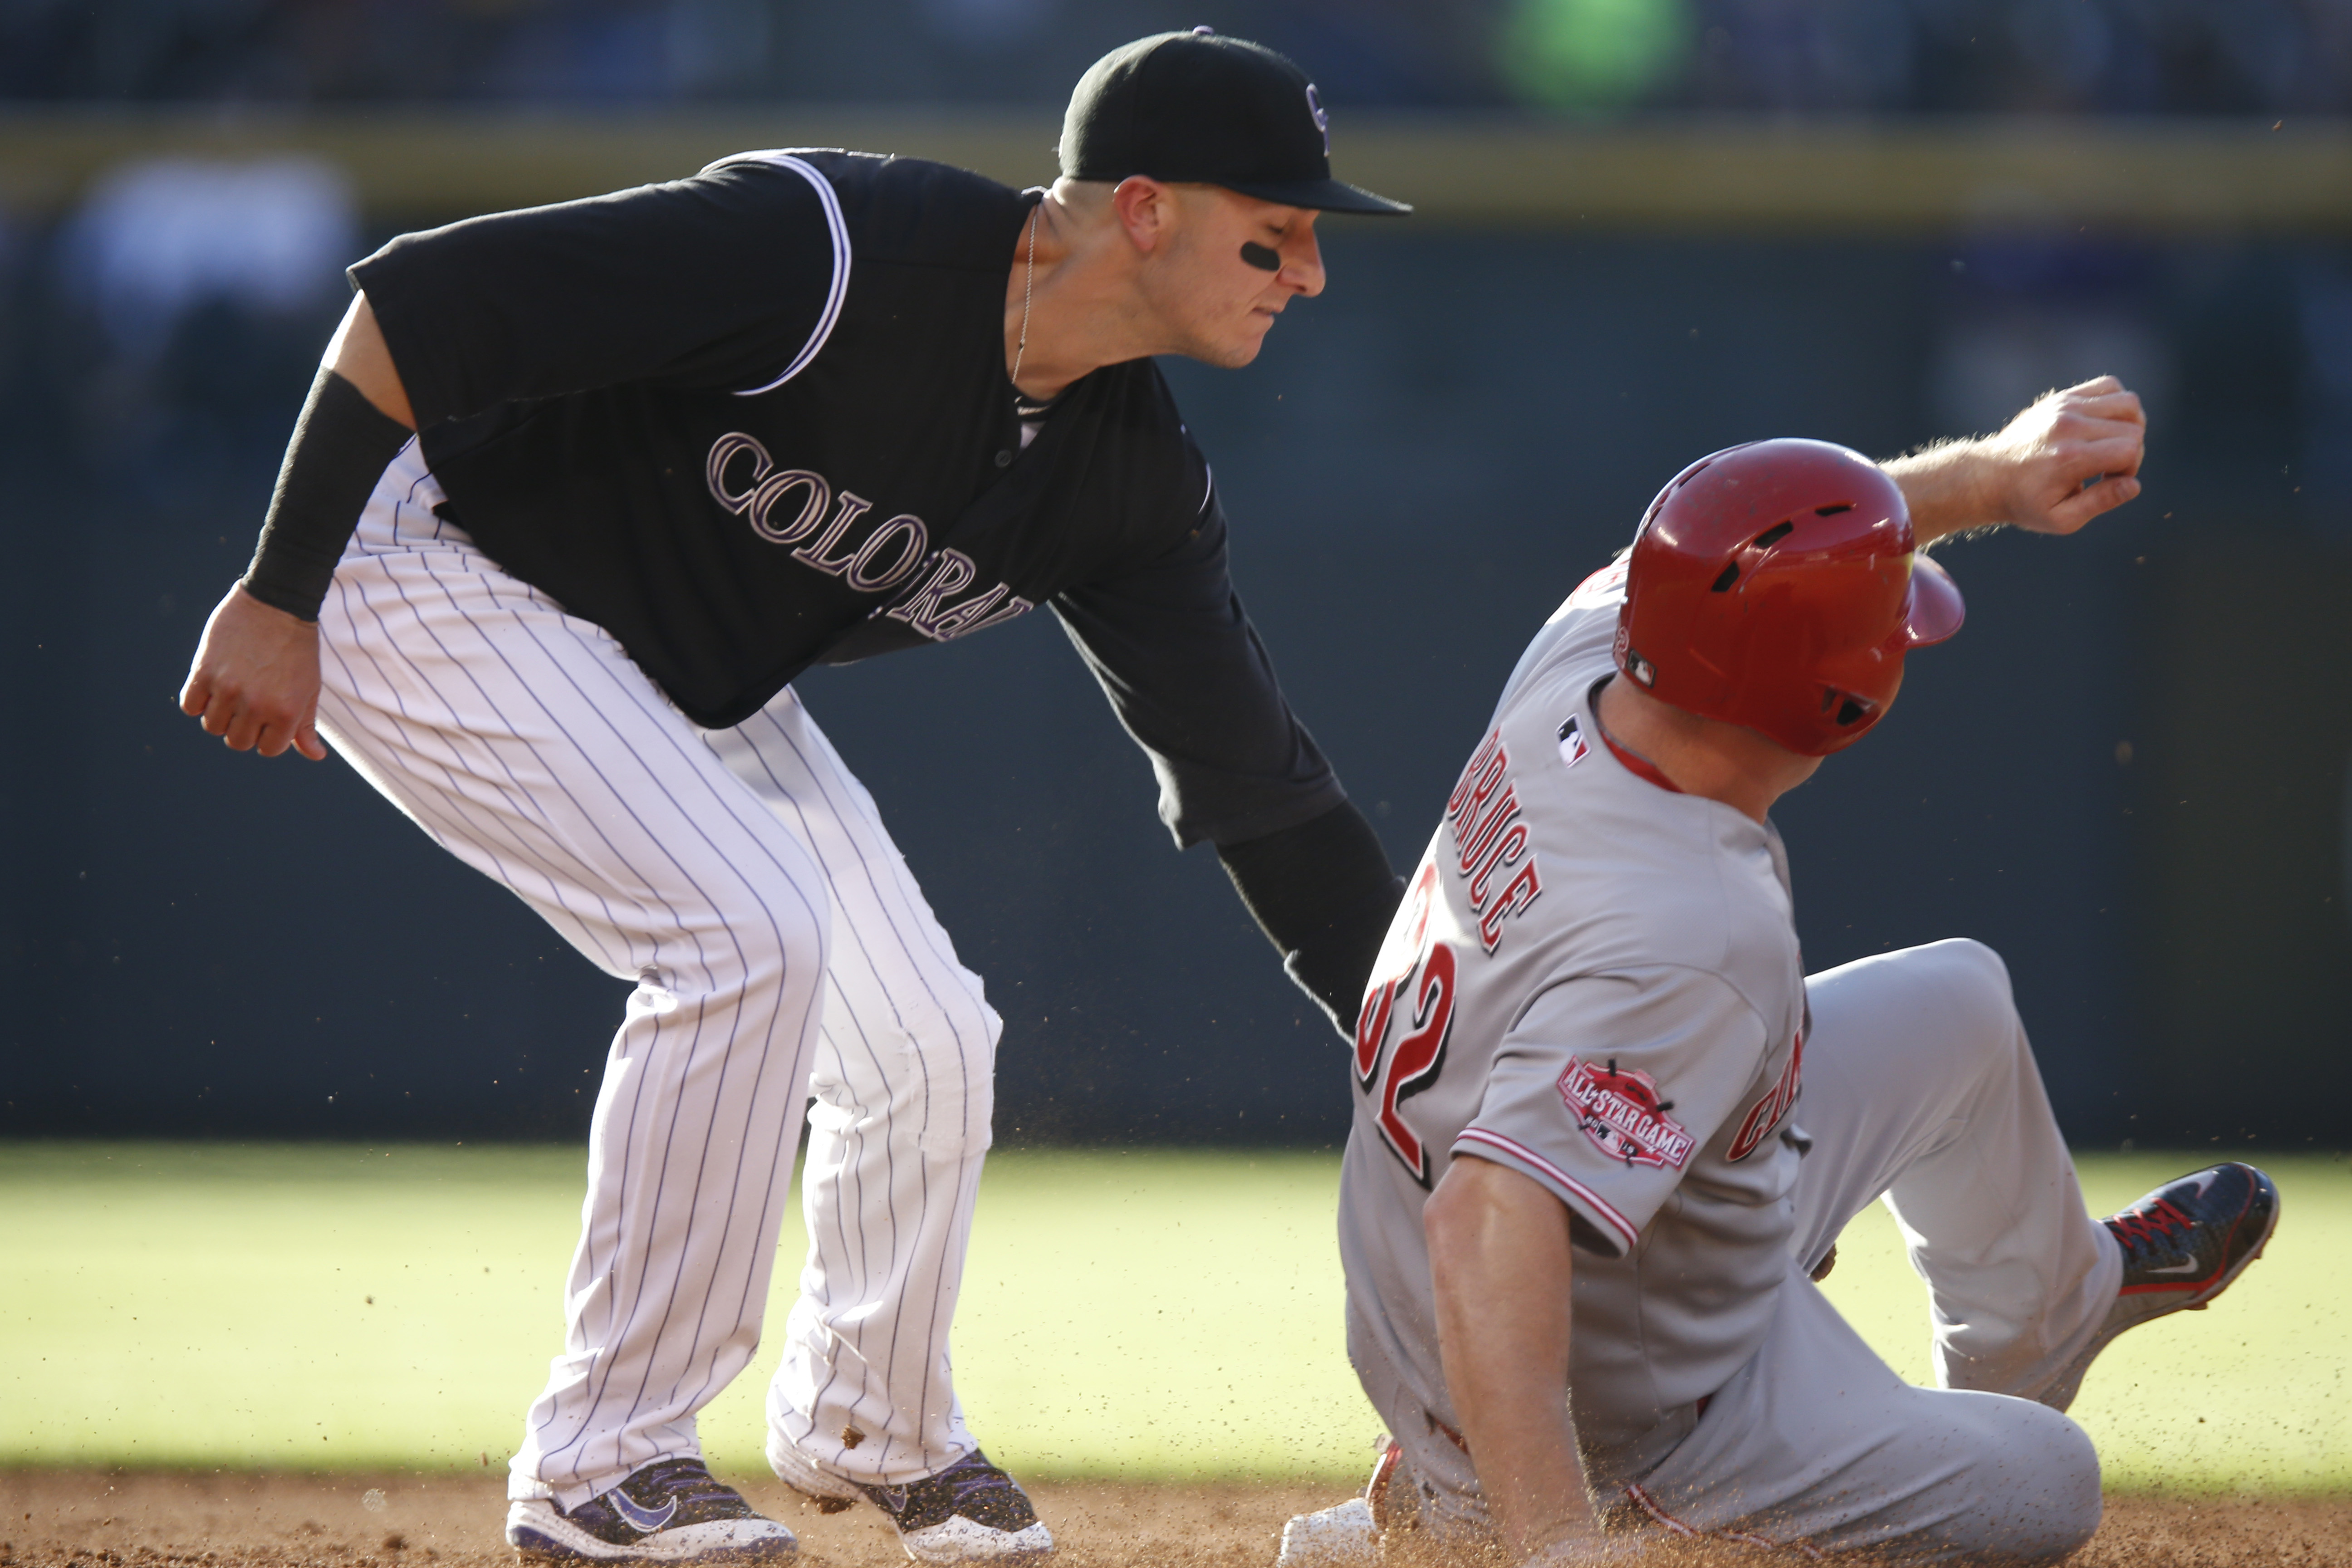 Colorado Rockies shortstop Troy Tulowitzki , left, tags out Cincinnati Reds' Jay Bruce as he tries to steal second base in the third inning of a baseball game Saturday, July 25, 2015, in Denver. (AP Photo/David Zalubowski)